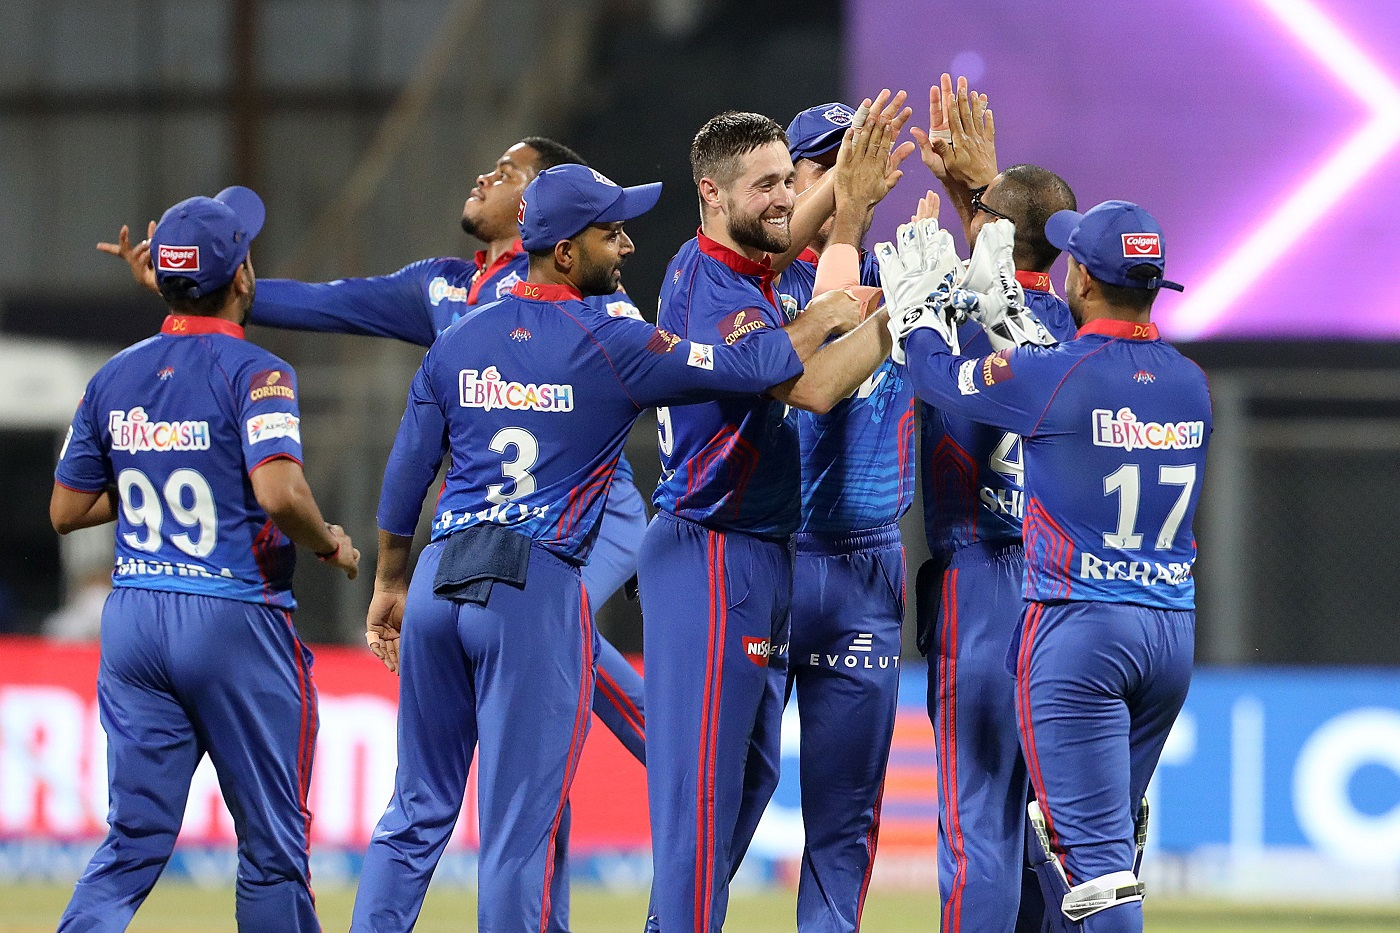 Chris Woakes has been an amazing addition to the DC team | BCCI-IPL